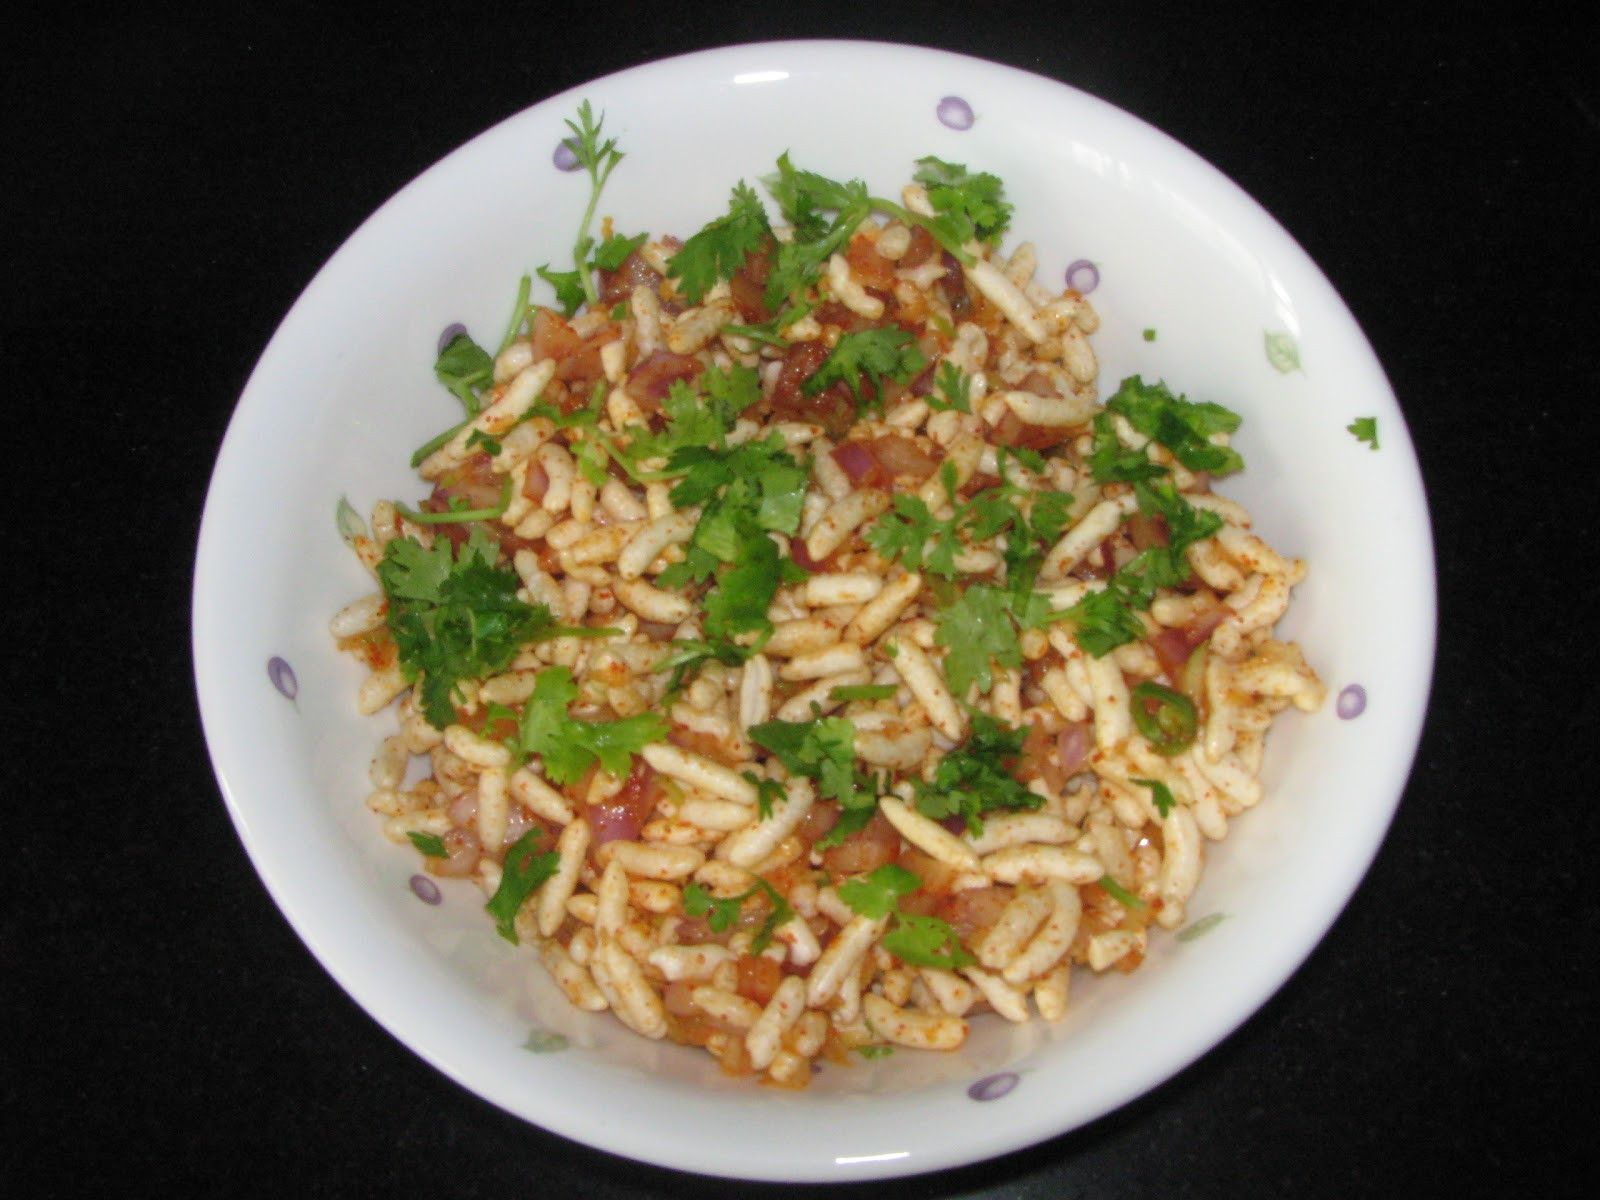 Healthy Evening Snacks  Cook Book Charmuri Upkari A Healthy Evening Snack made